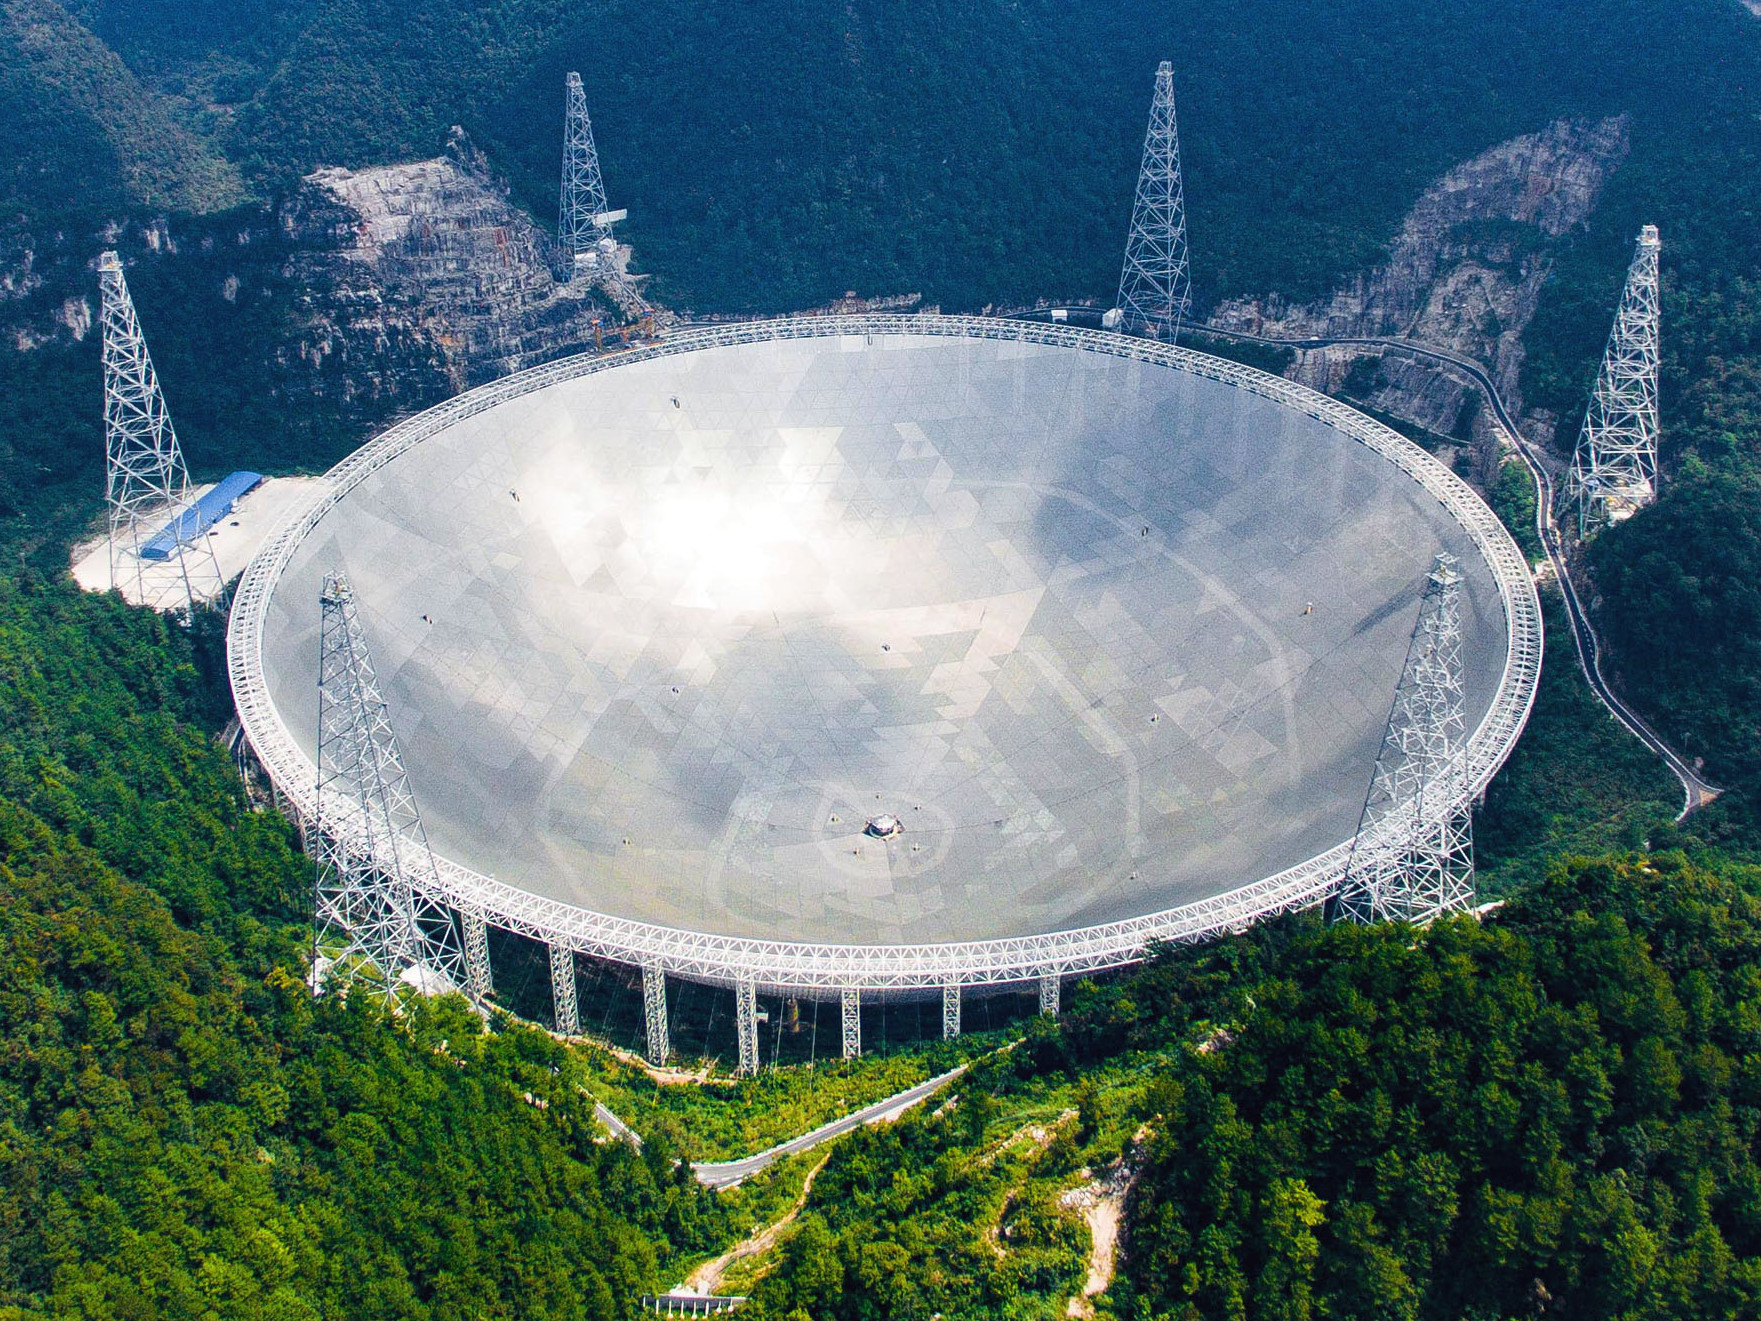 The Five-hundred-metre Aperture Spherical Telescope (FAST) in the southwestern province of Guizhou, China is now operational. Image credit: Xinhua News Agency.